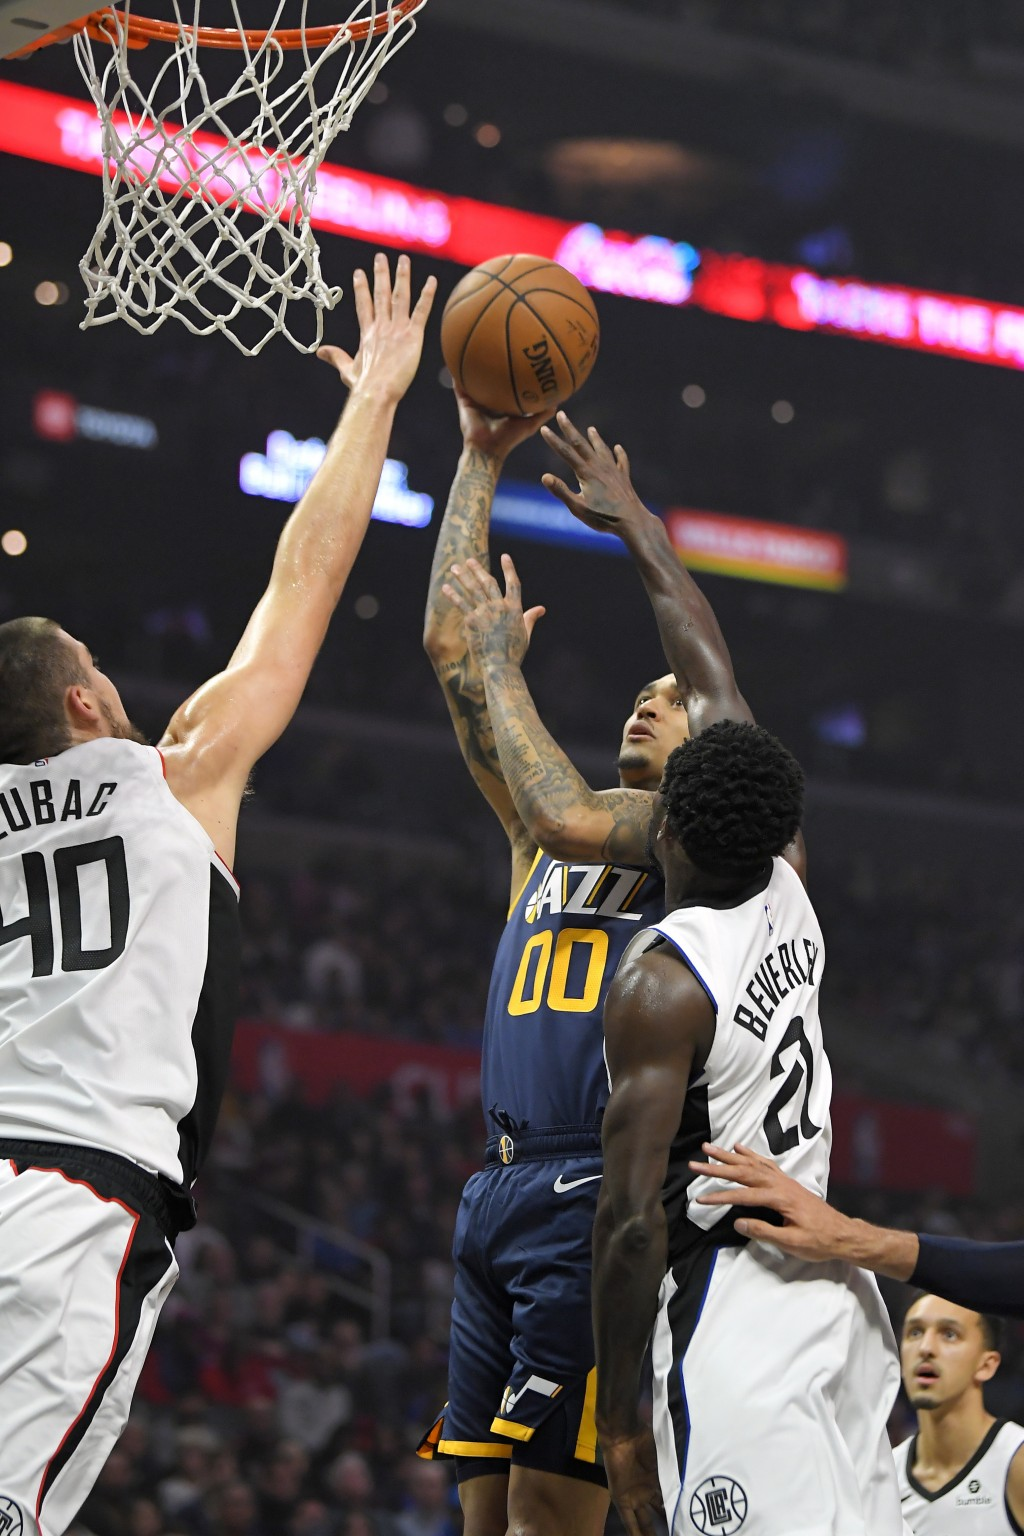 Utah Jazz guard Jordan Clarkson (00) shoots as Los Angeles Clippers center Ivica Zubac, left, and guard Patrick Beverley defend during the first half ...